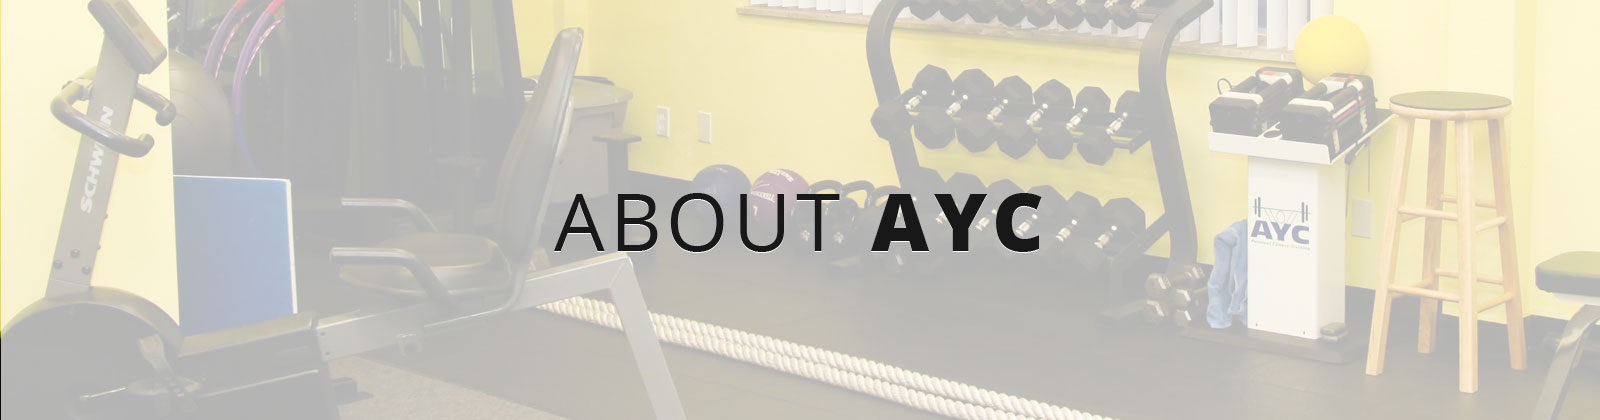 About AYC Fitness Trainers